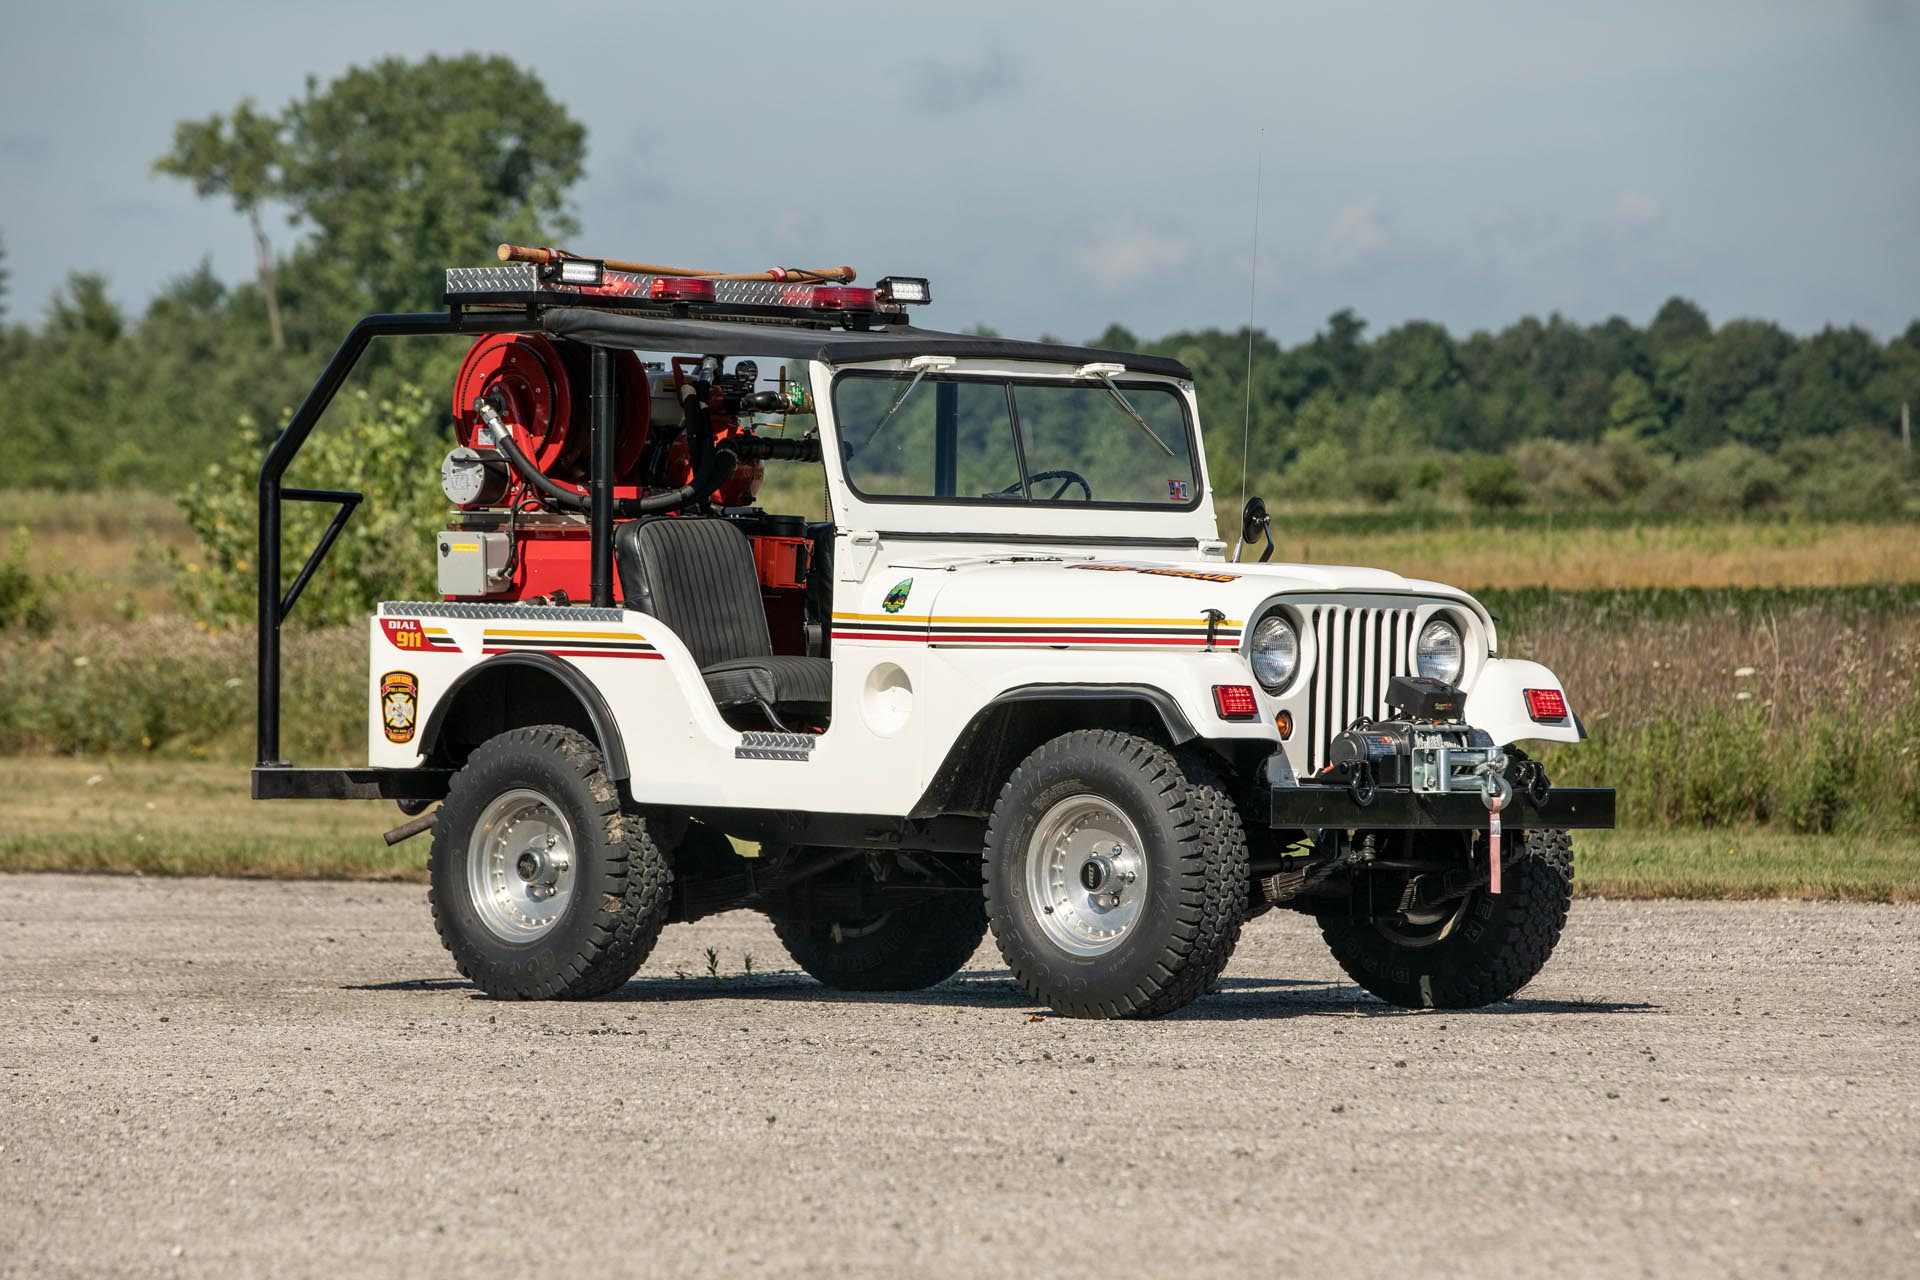 1952 Willys M38A1 Brush Fire Truck